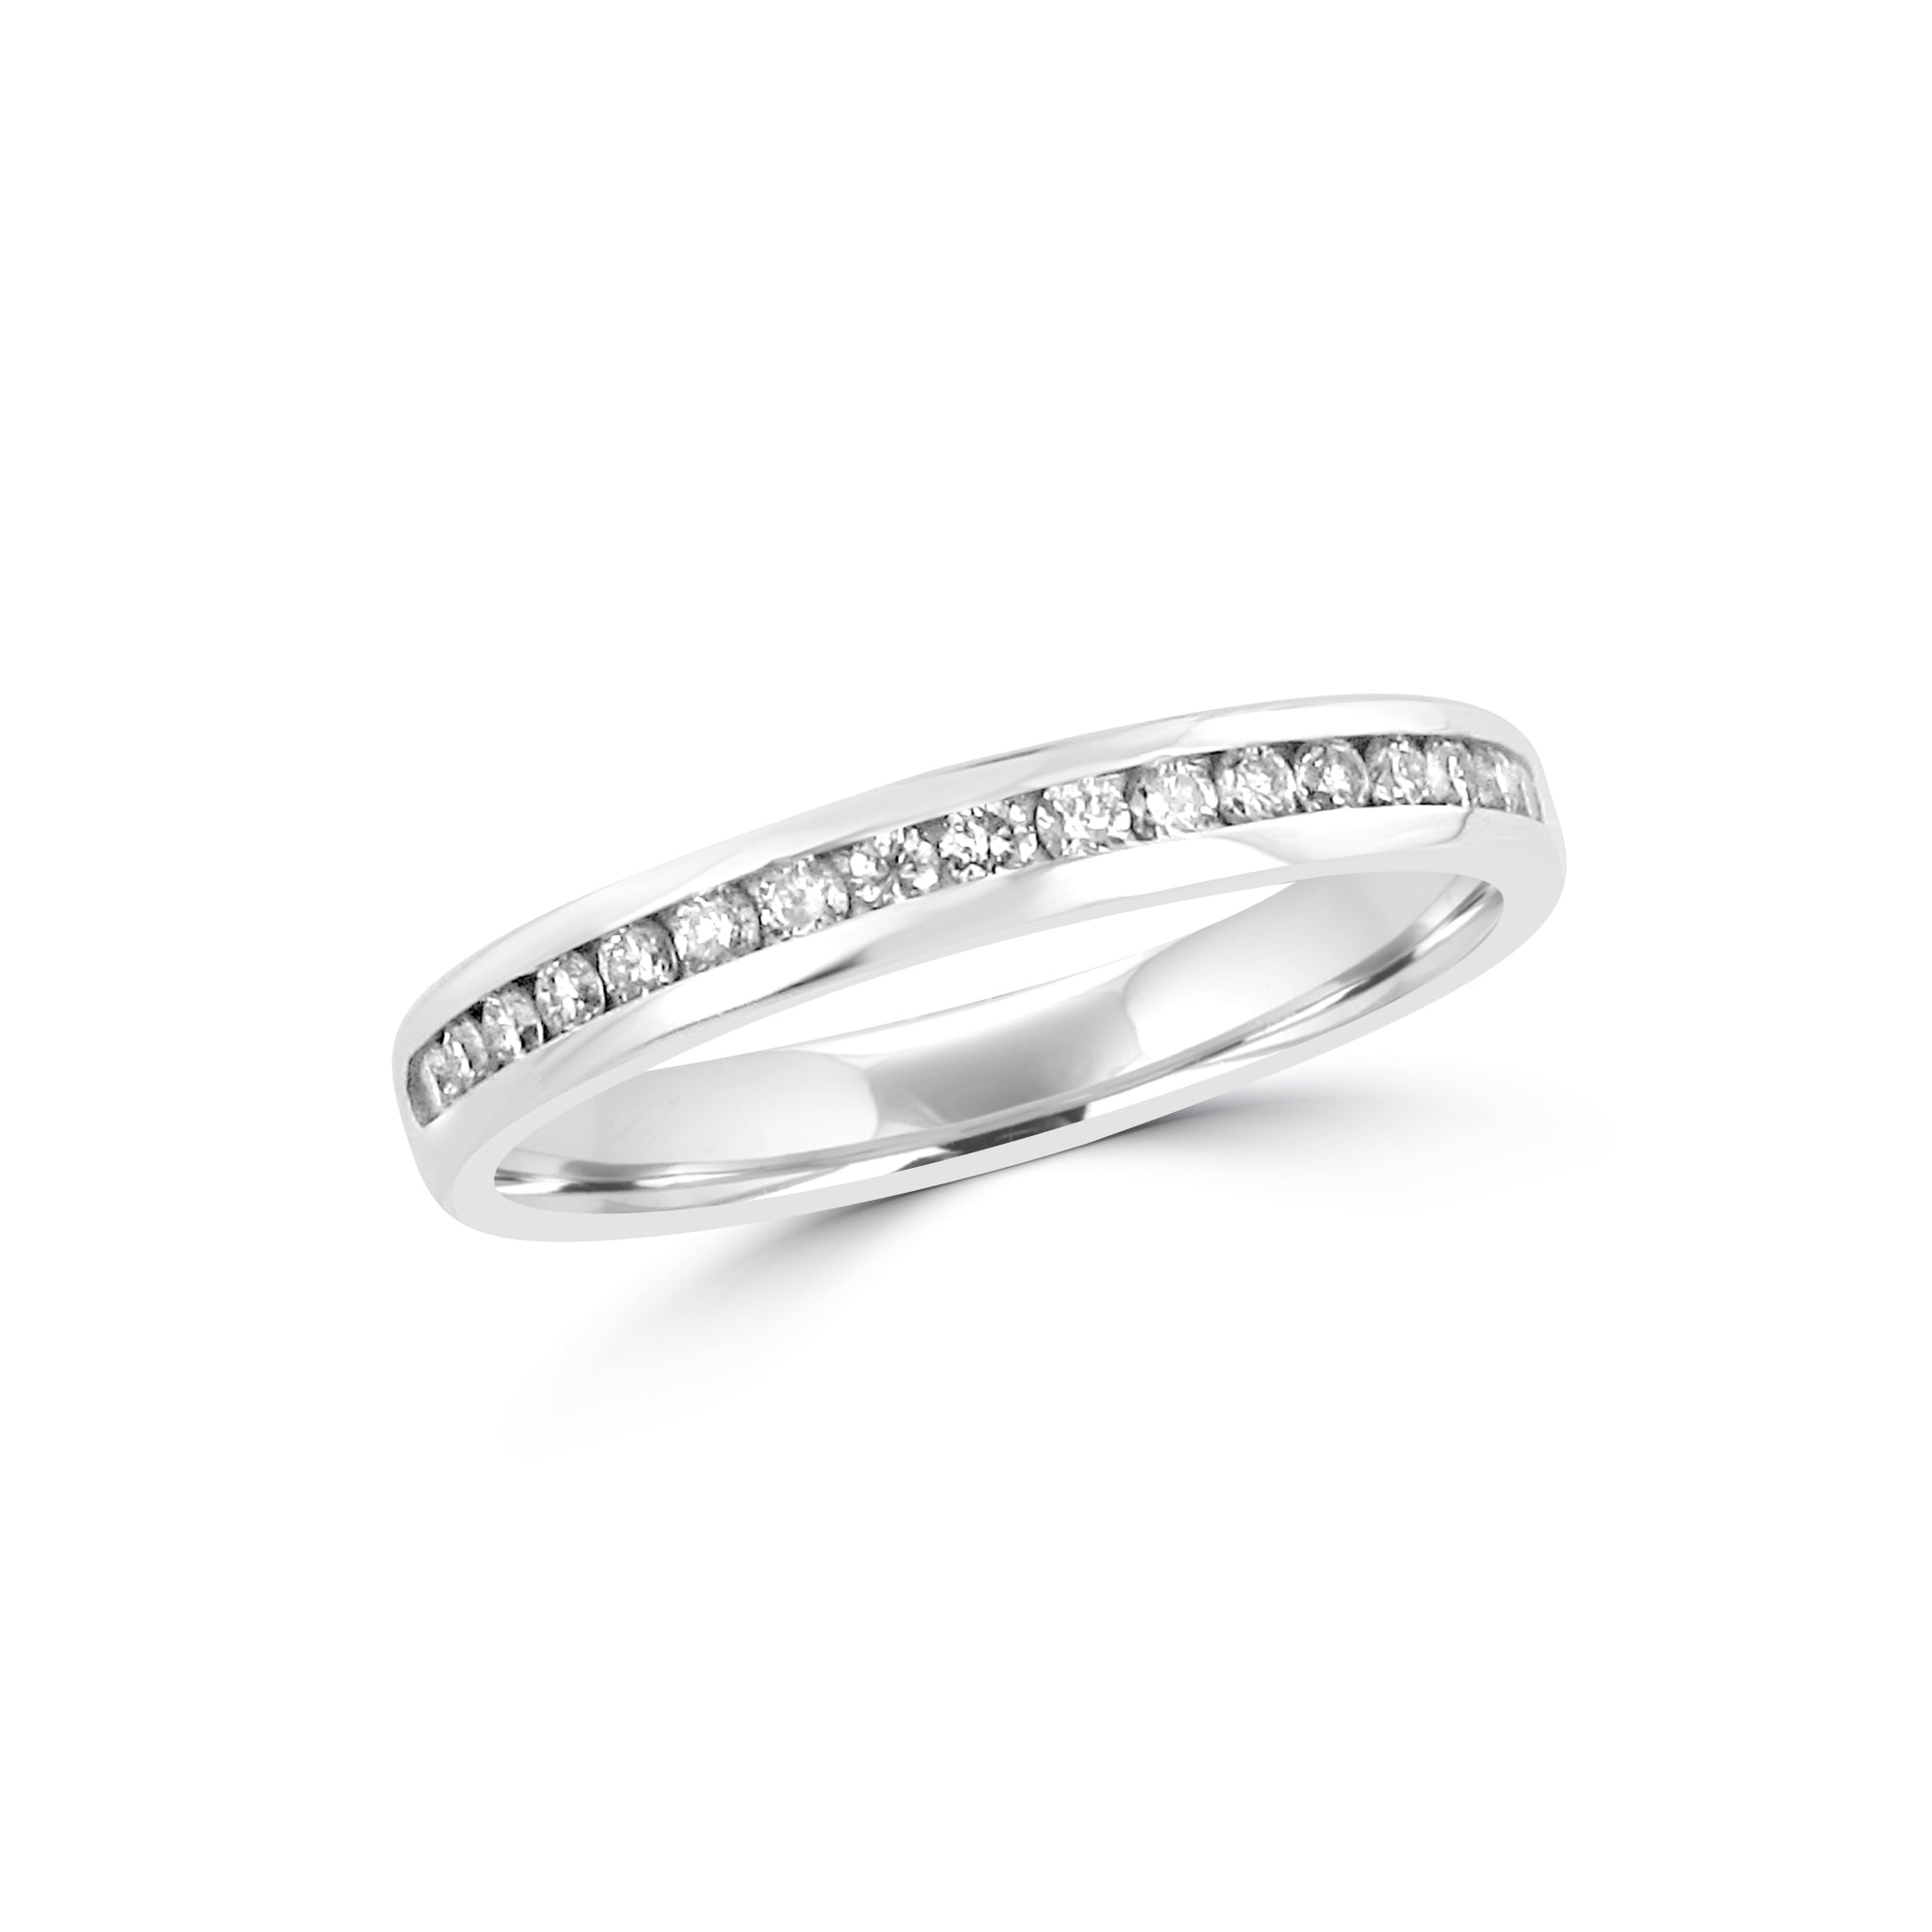 avanti wedding mens ring pewter from rings image chamfered edge platinum